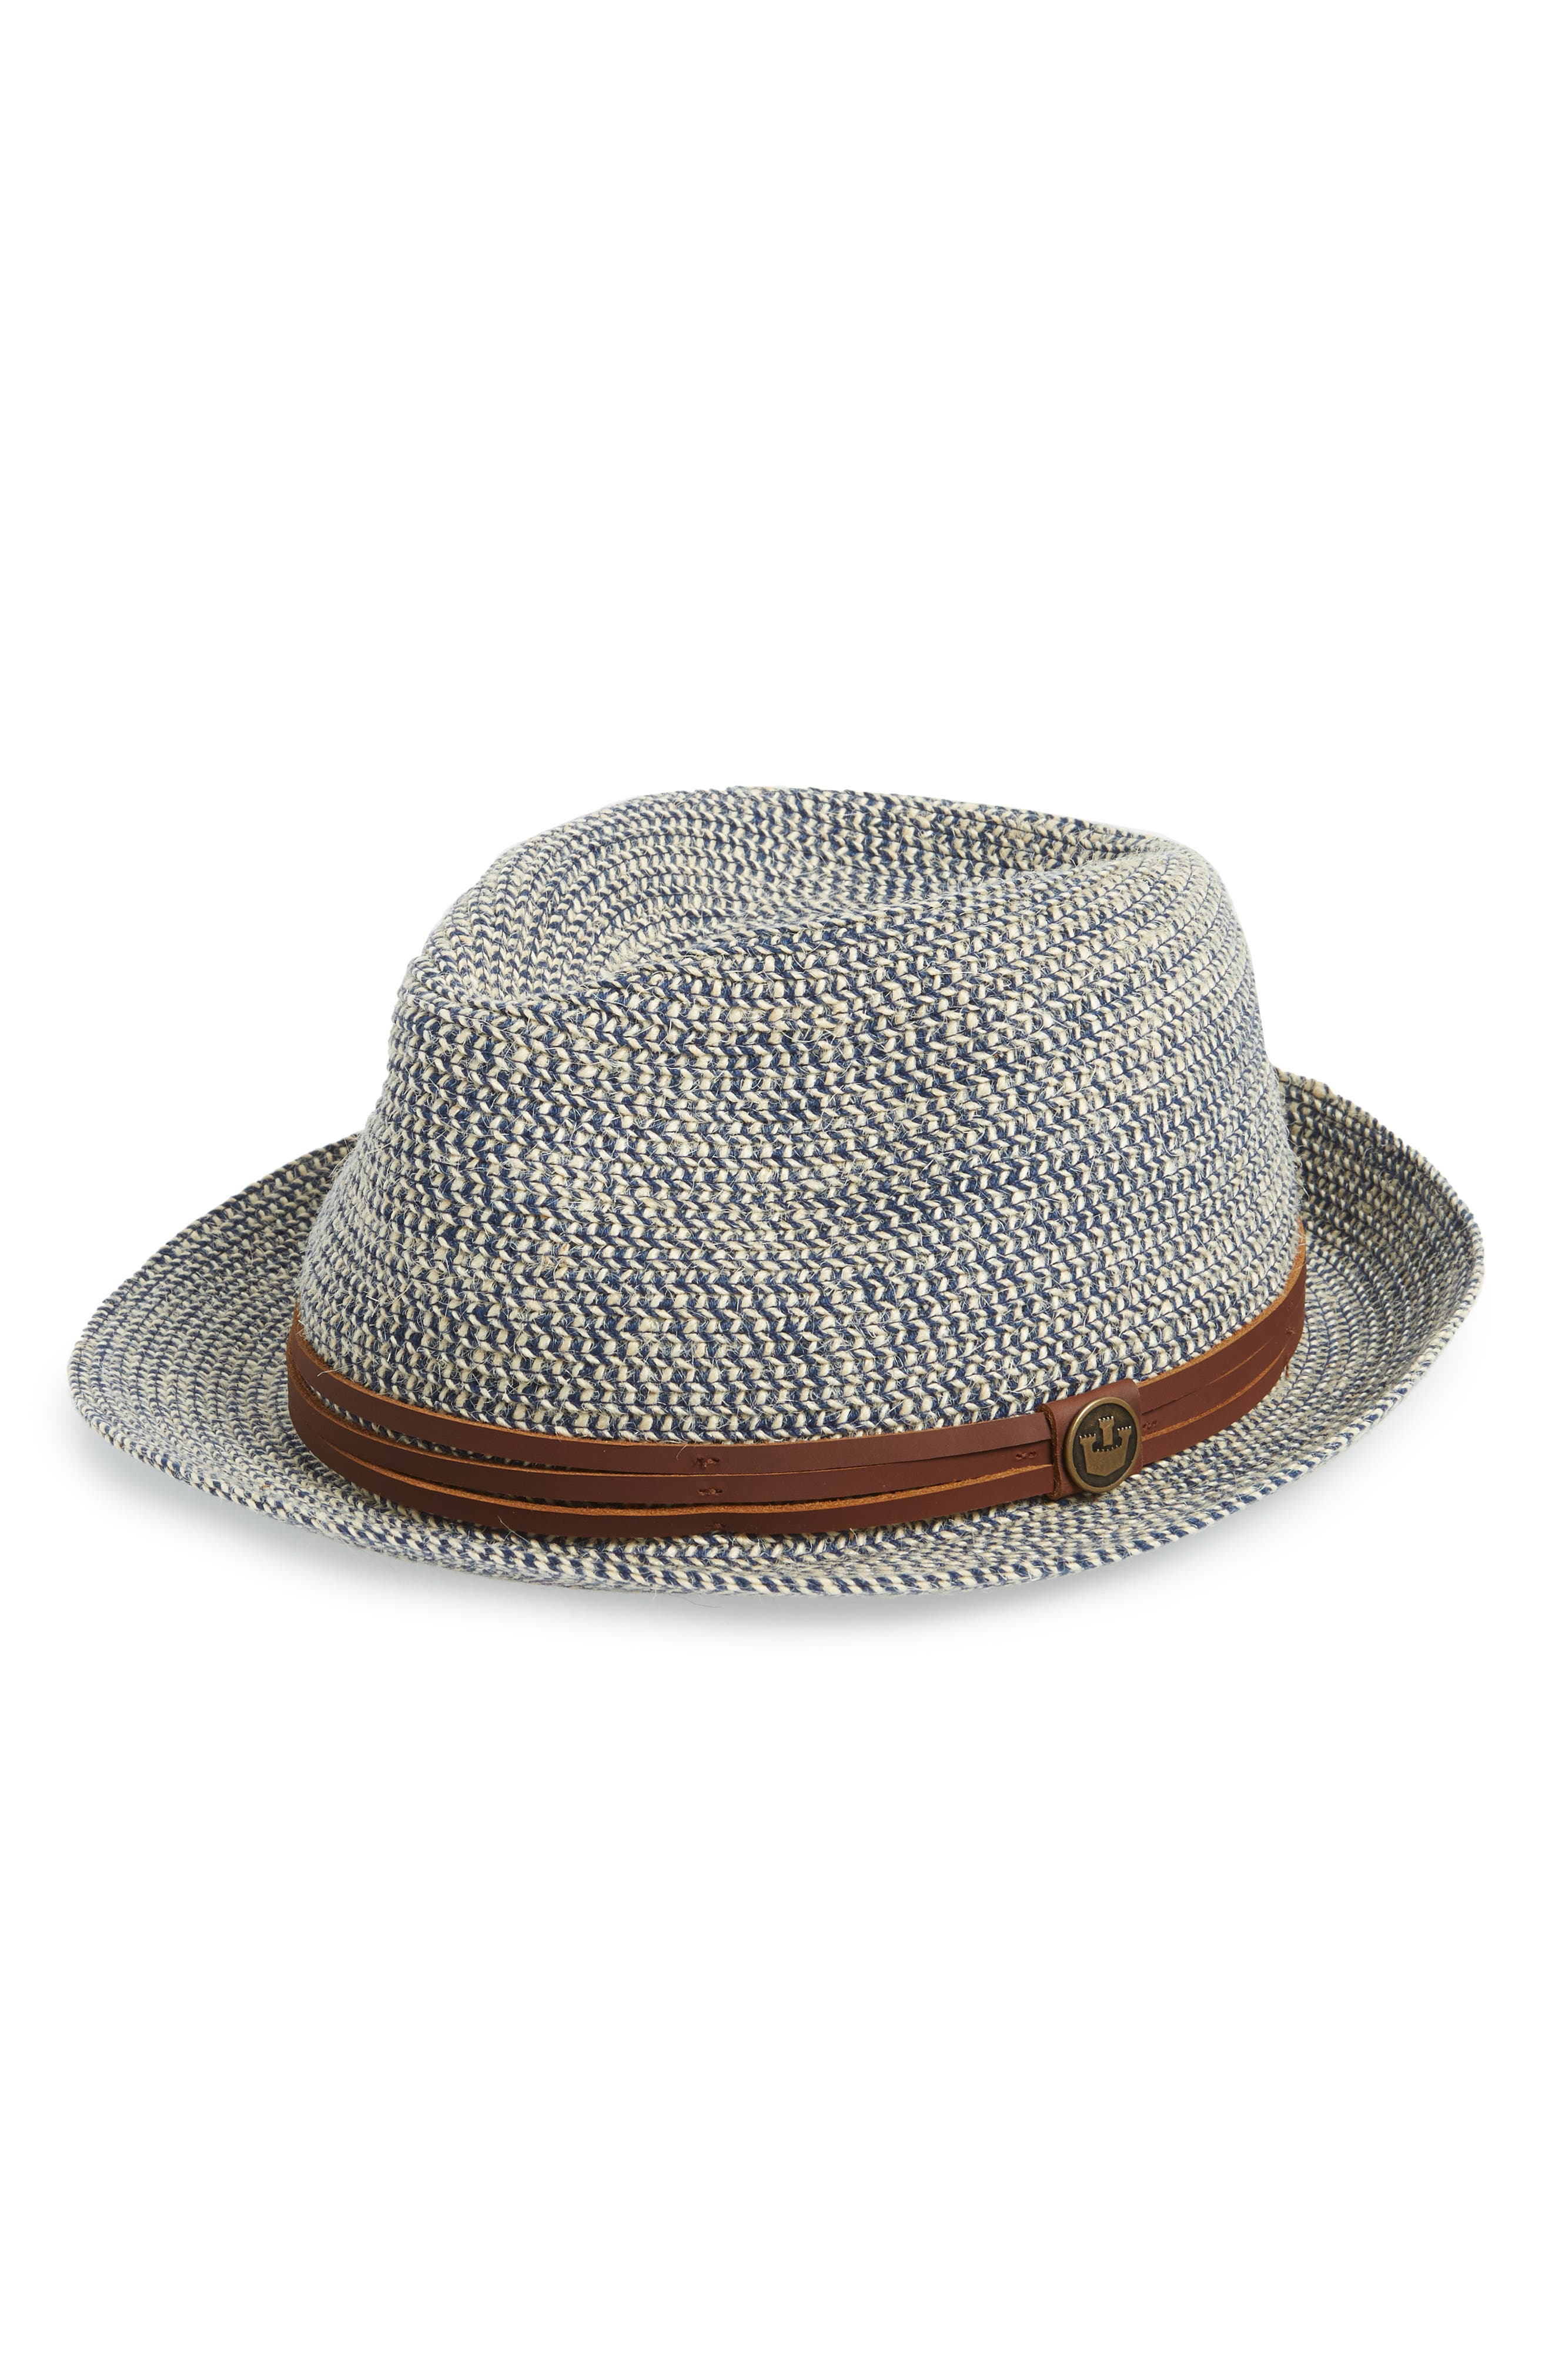 Laying Low Porkpie Hat,                         Main,                         color, Navy